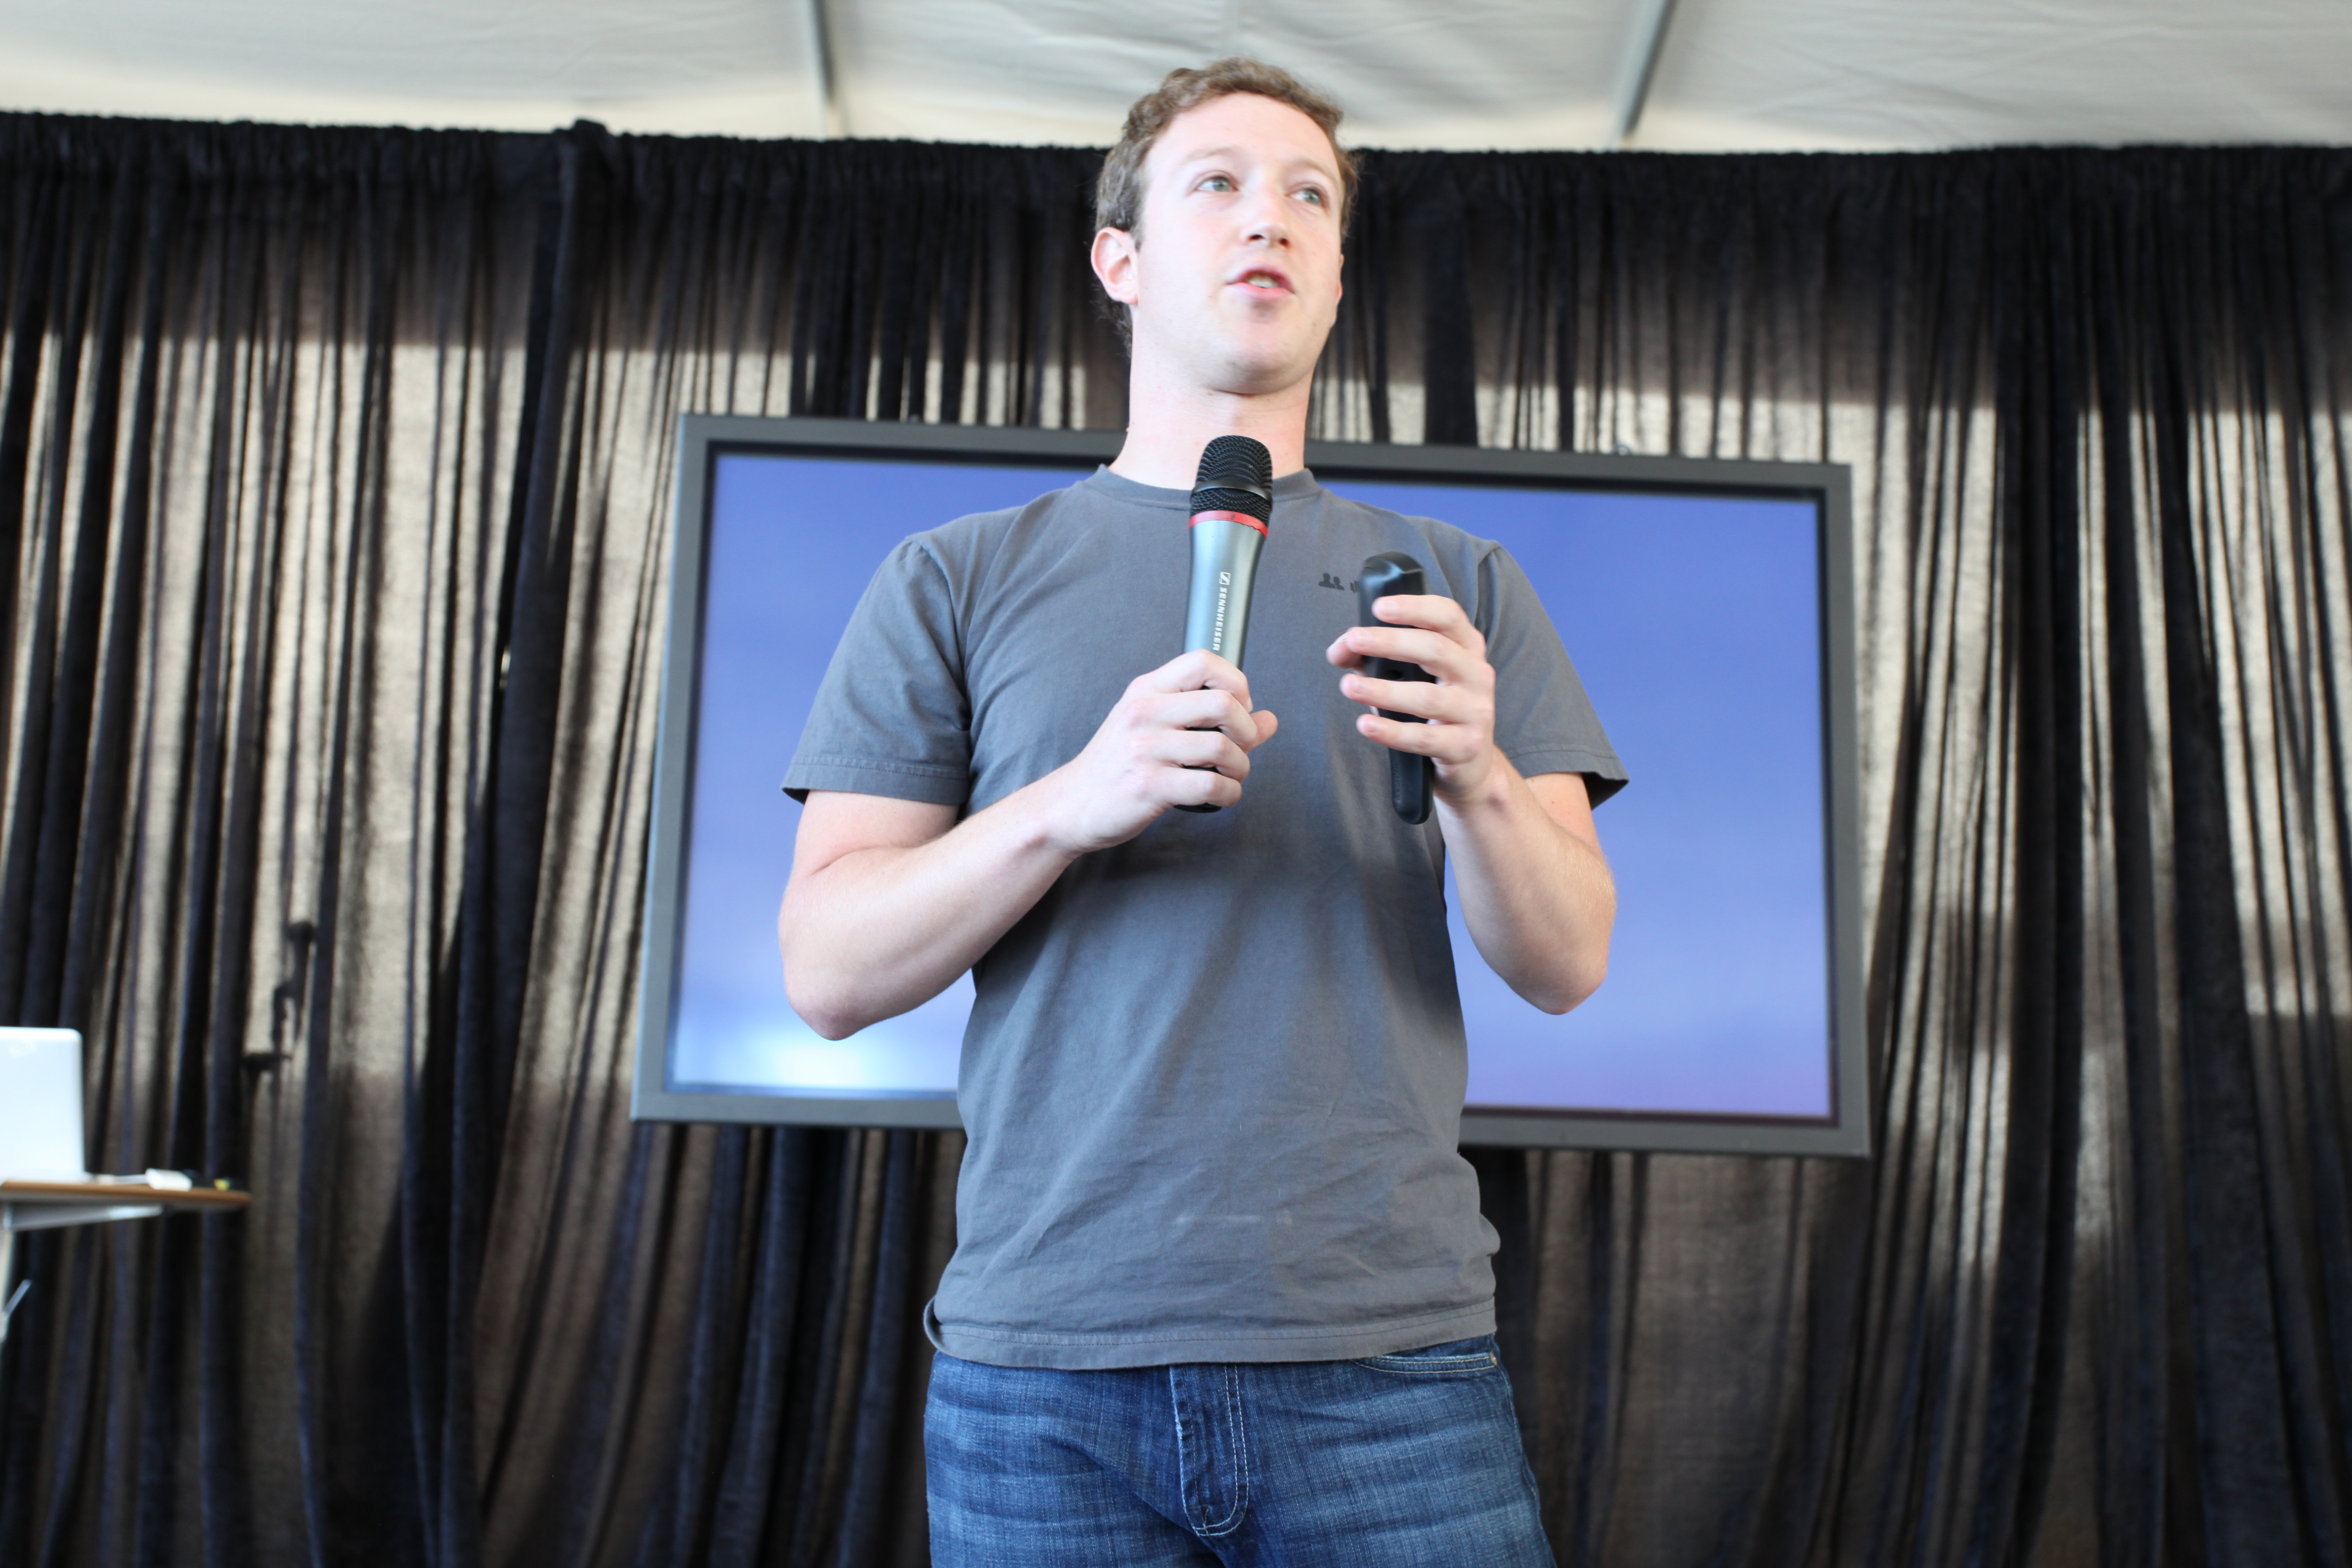 """Facebook Press Conference"" by Robert Scoble (CC BY 2.0)"